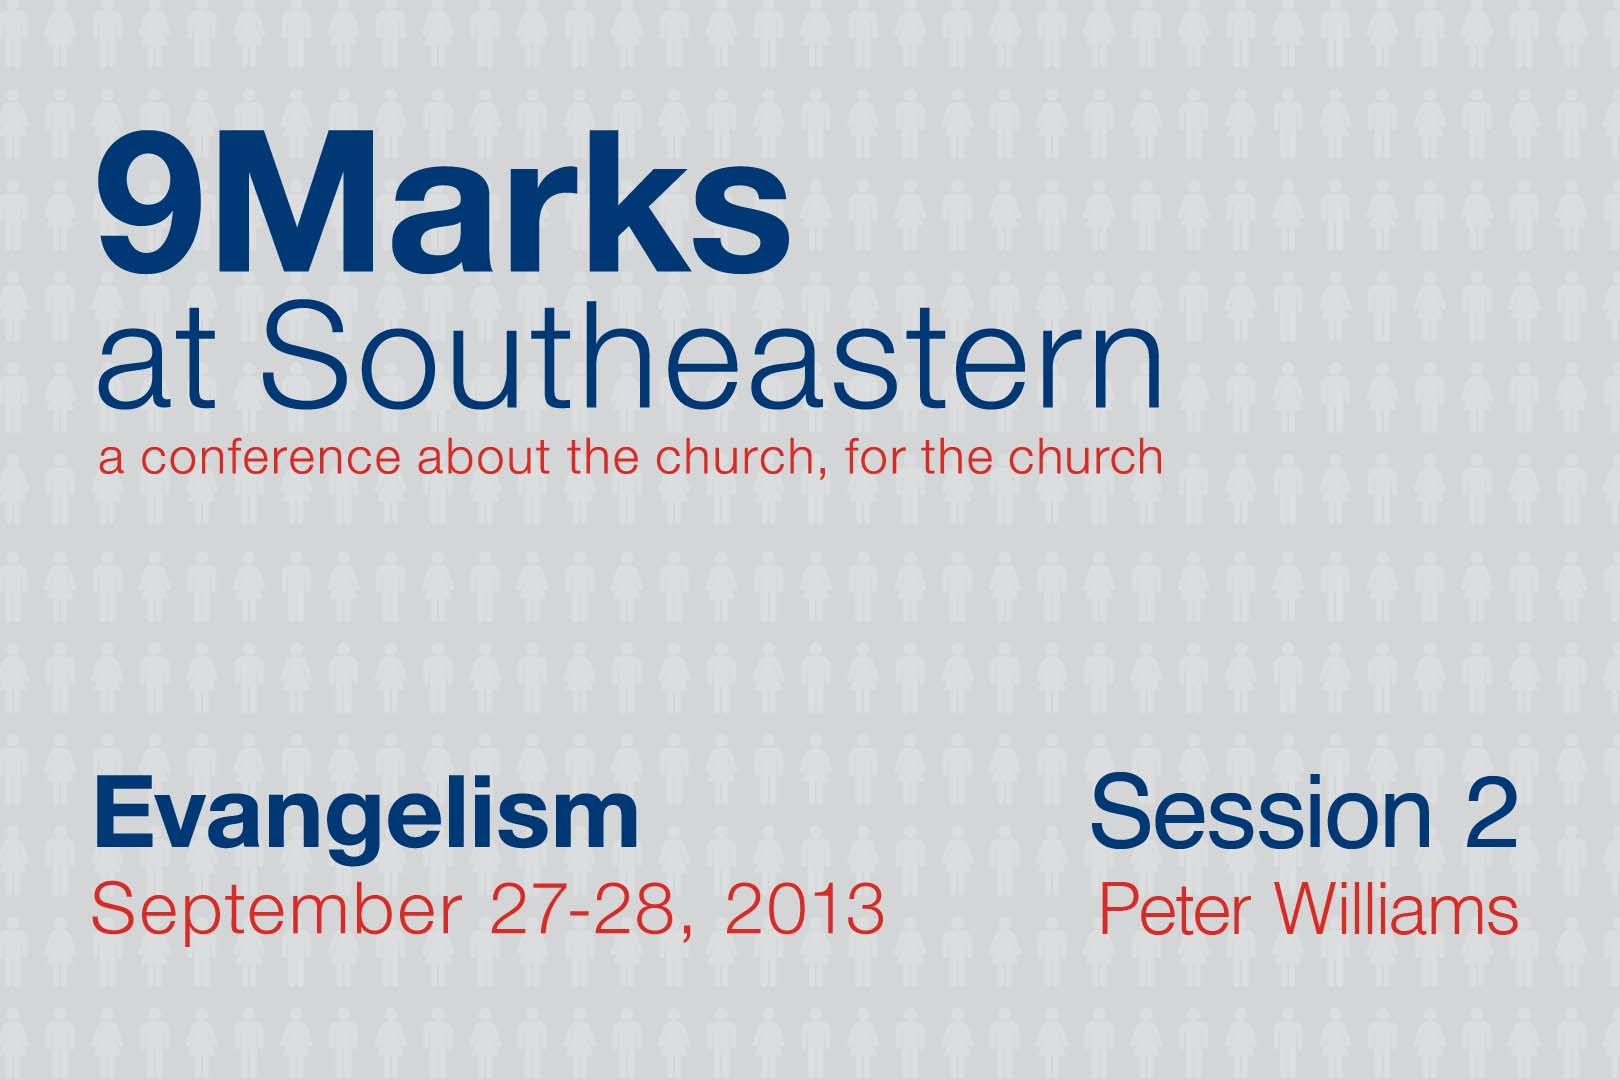 9Marks at Southeastern 2013 – Evangelism: Session 2